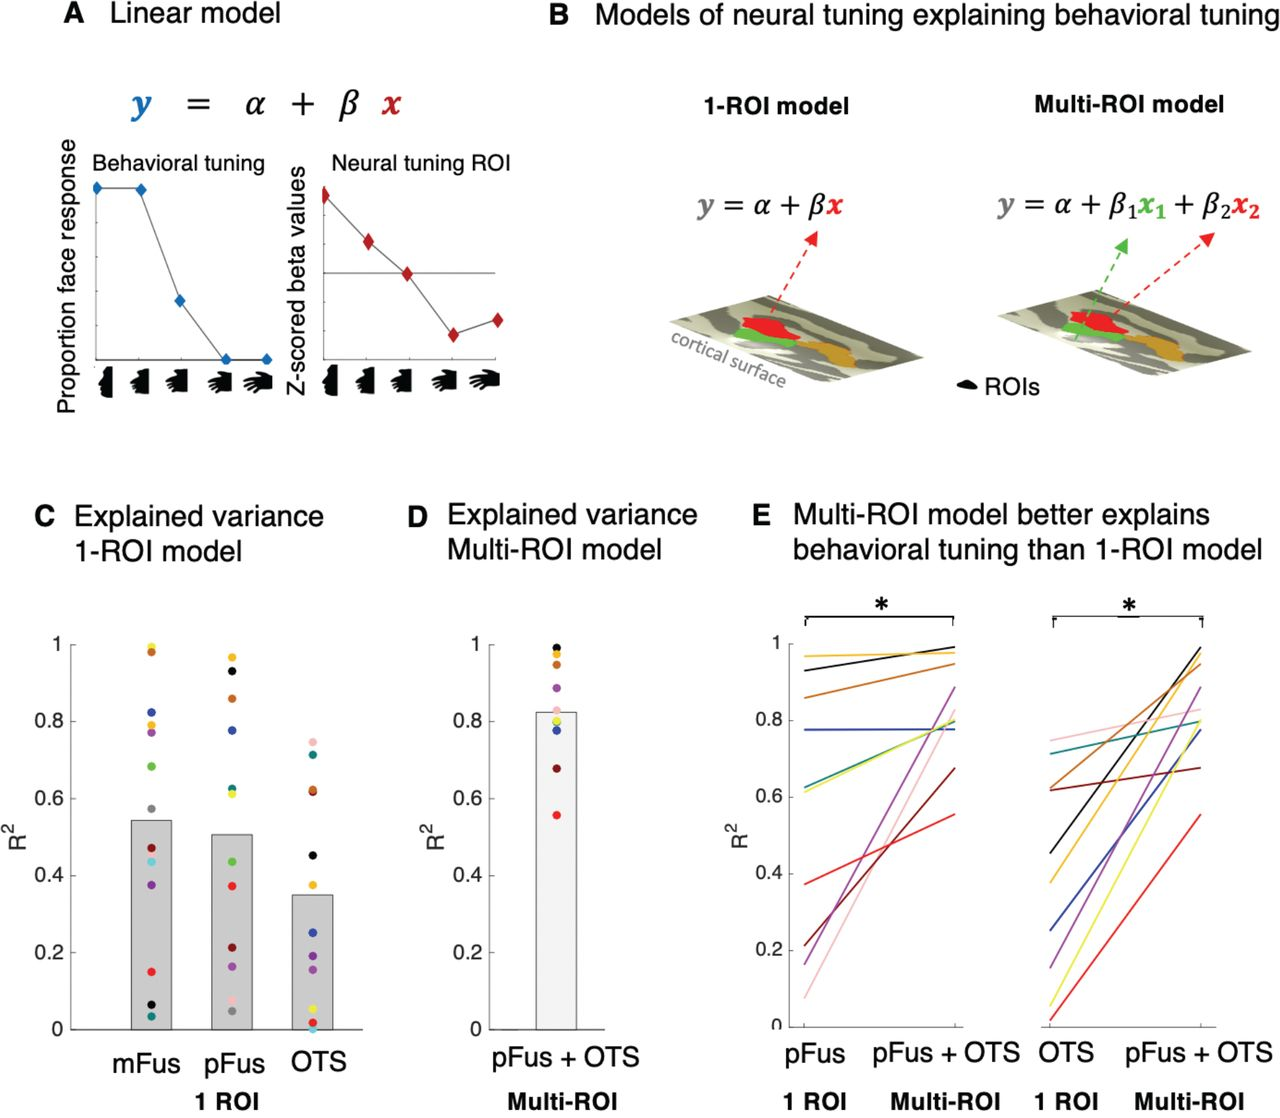 Modeling neural tuning in human ventral temporal cortex predicts the